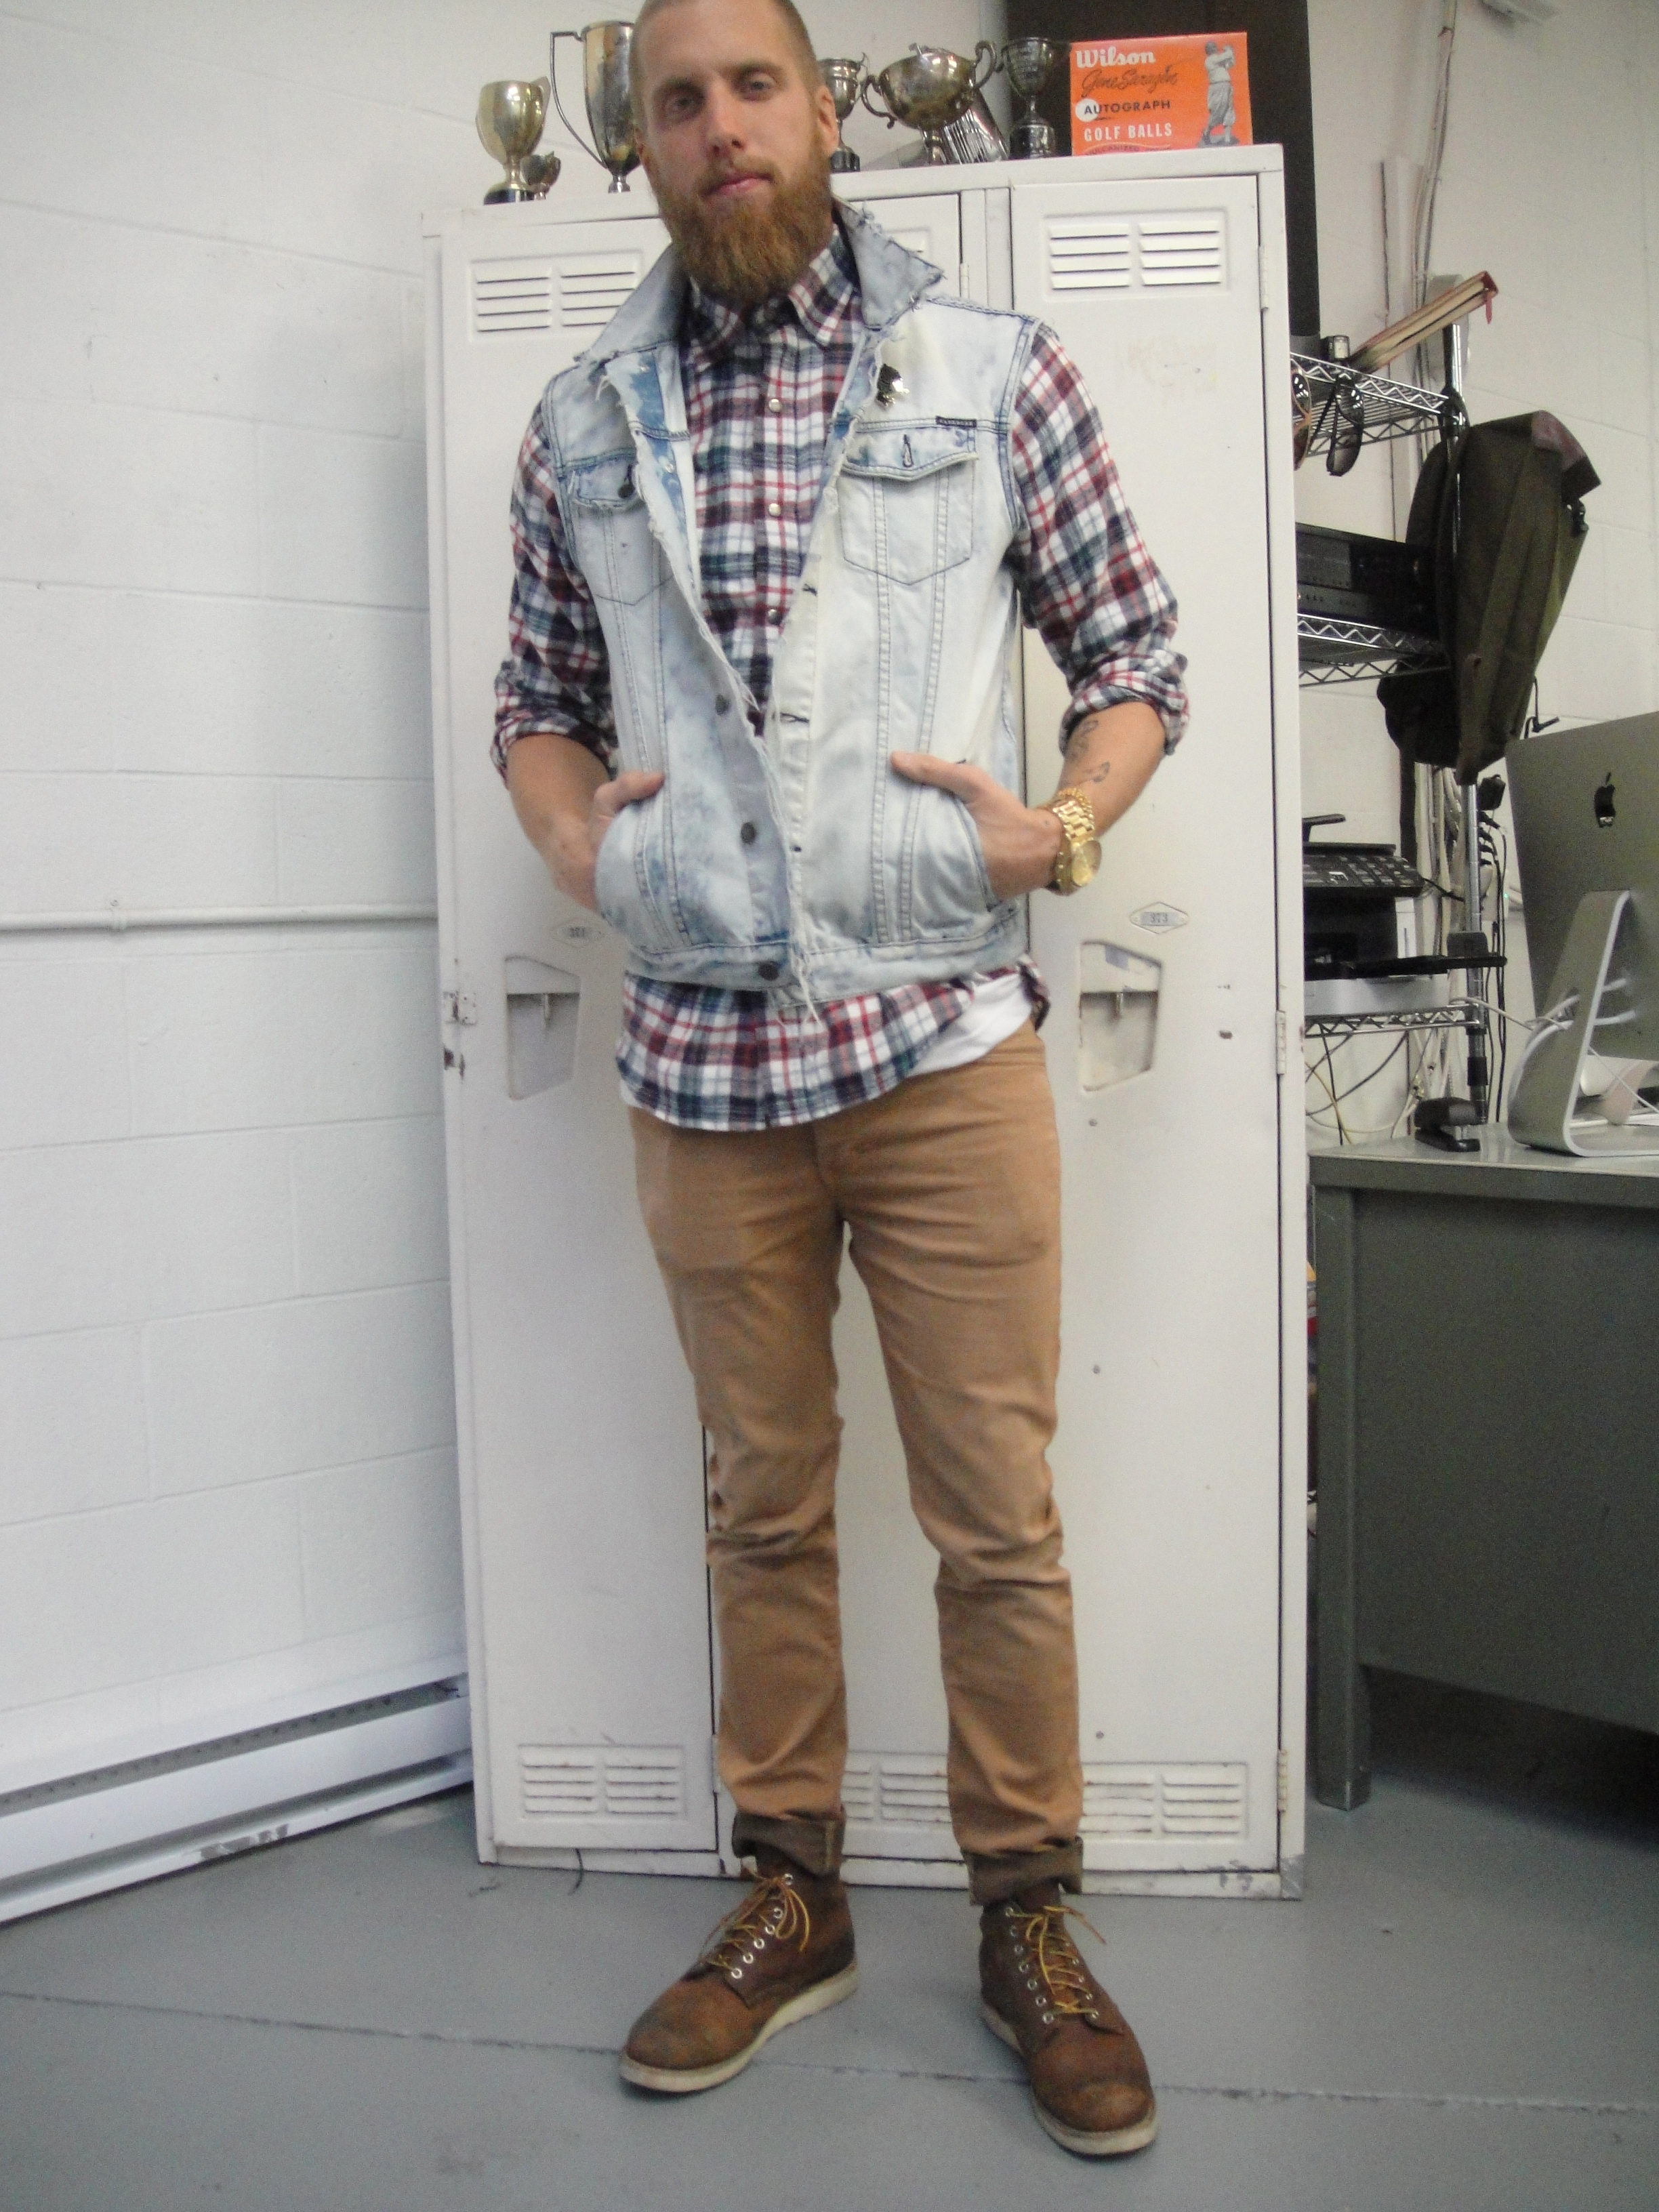 Daniel: Denim vest (hand done himself) and Plaid shirt with kaki pants